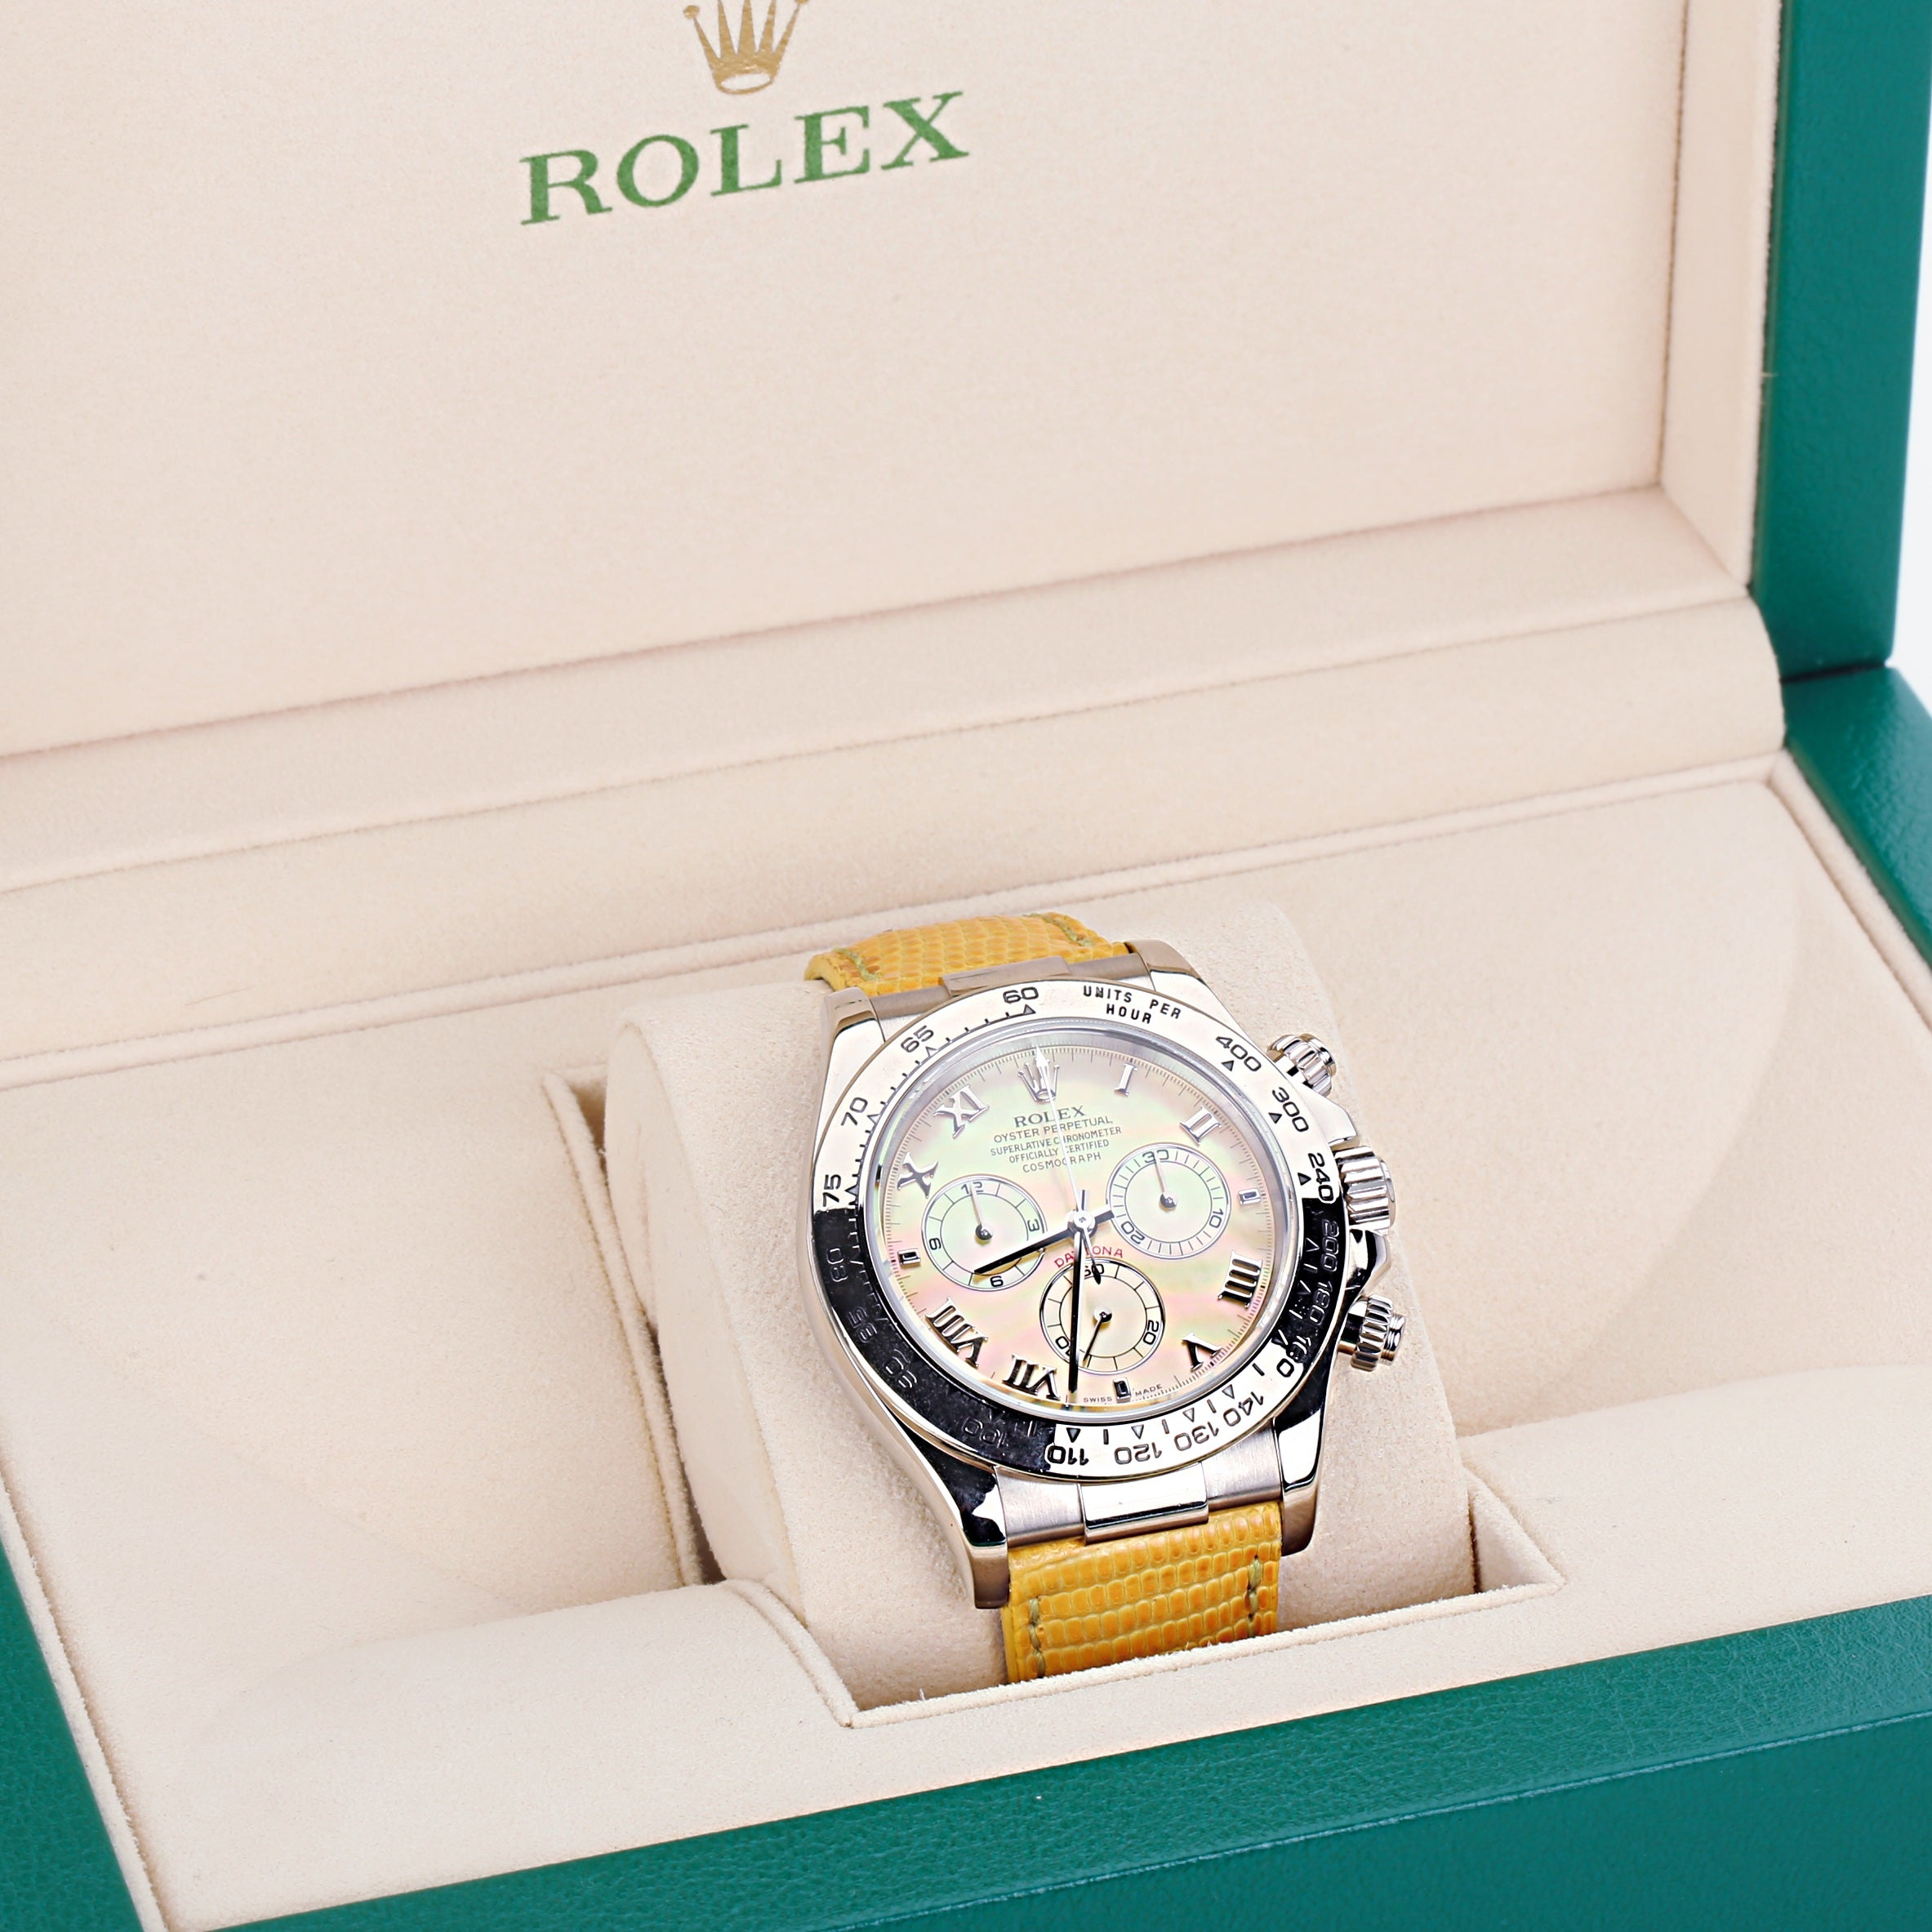 Rolex Oyster Perpetual Daytona Beach yellow mother of pearl ref 116519 with box - Terrafinejewelry